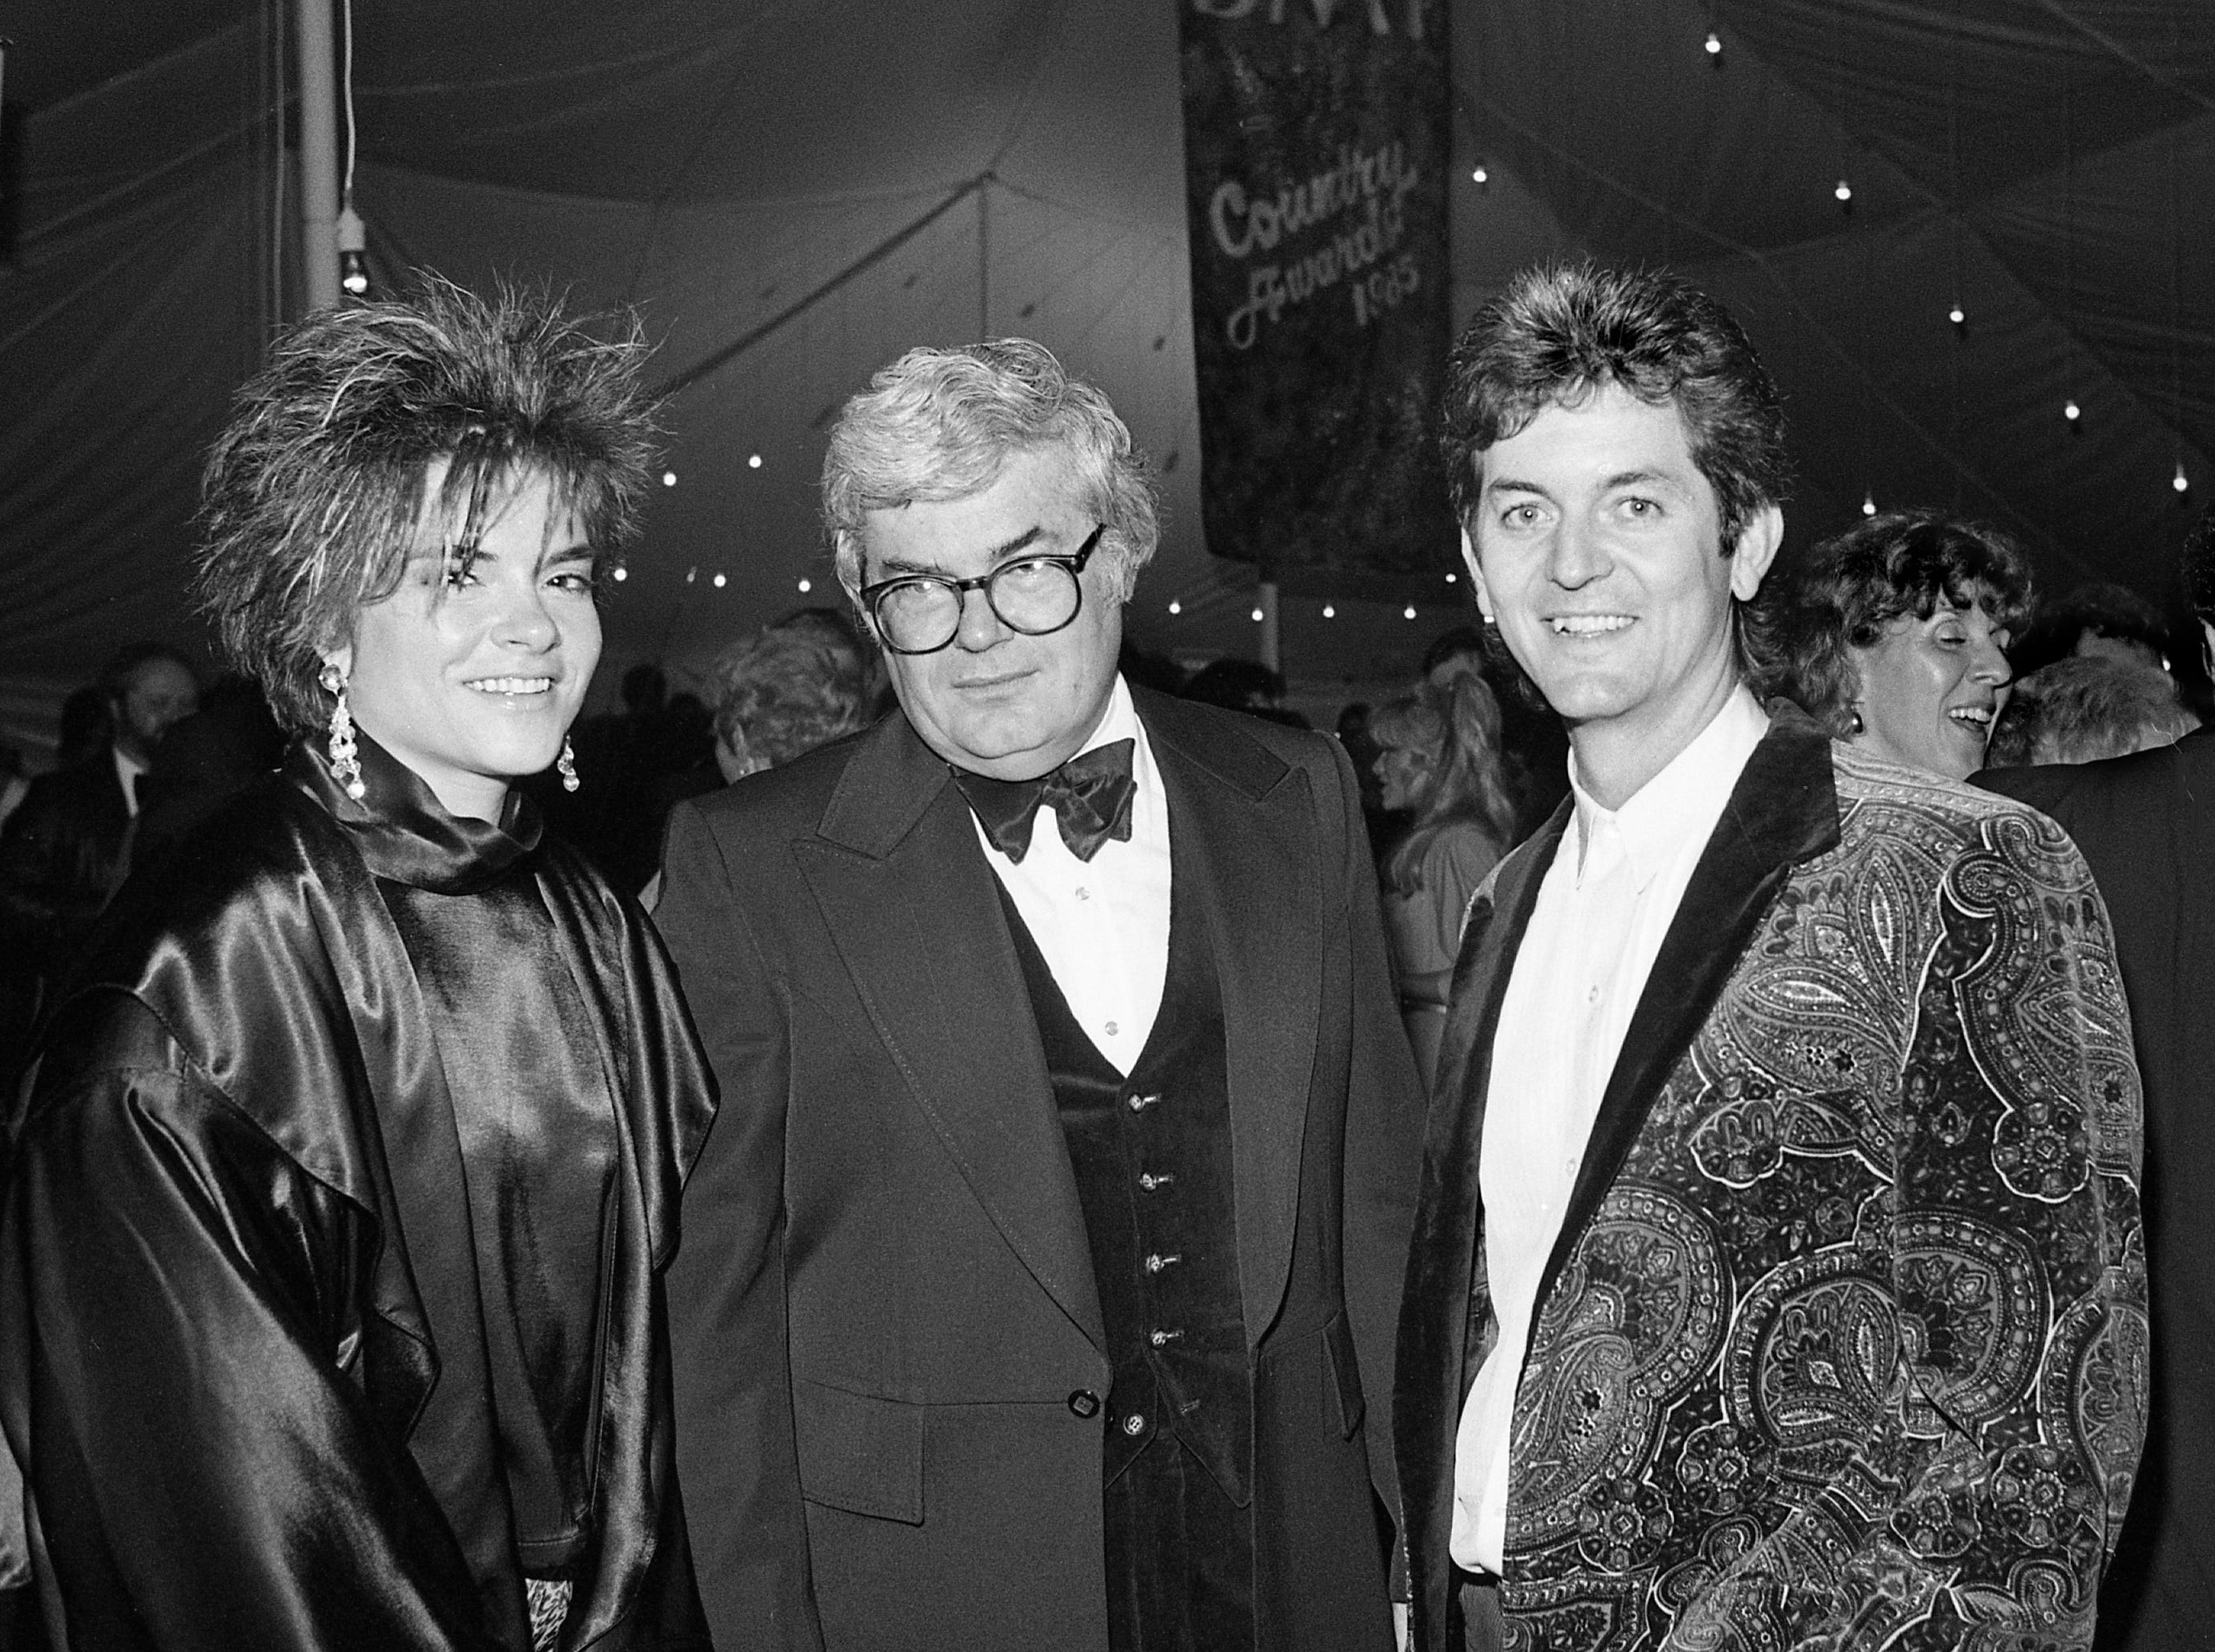 Rosanne Cash and husband Rodney Crowell flank an unidentified guest at the BMI Awards banquet on Oct. 15, 1985, in Nashville, Tennessee.